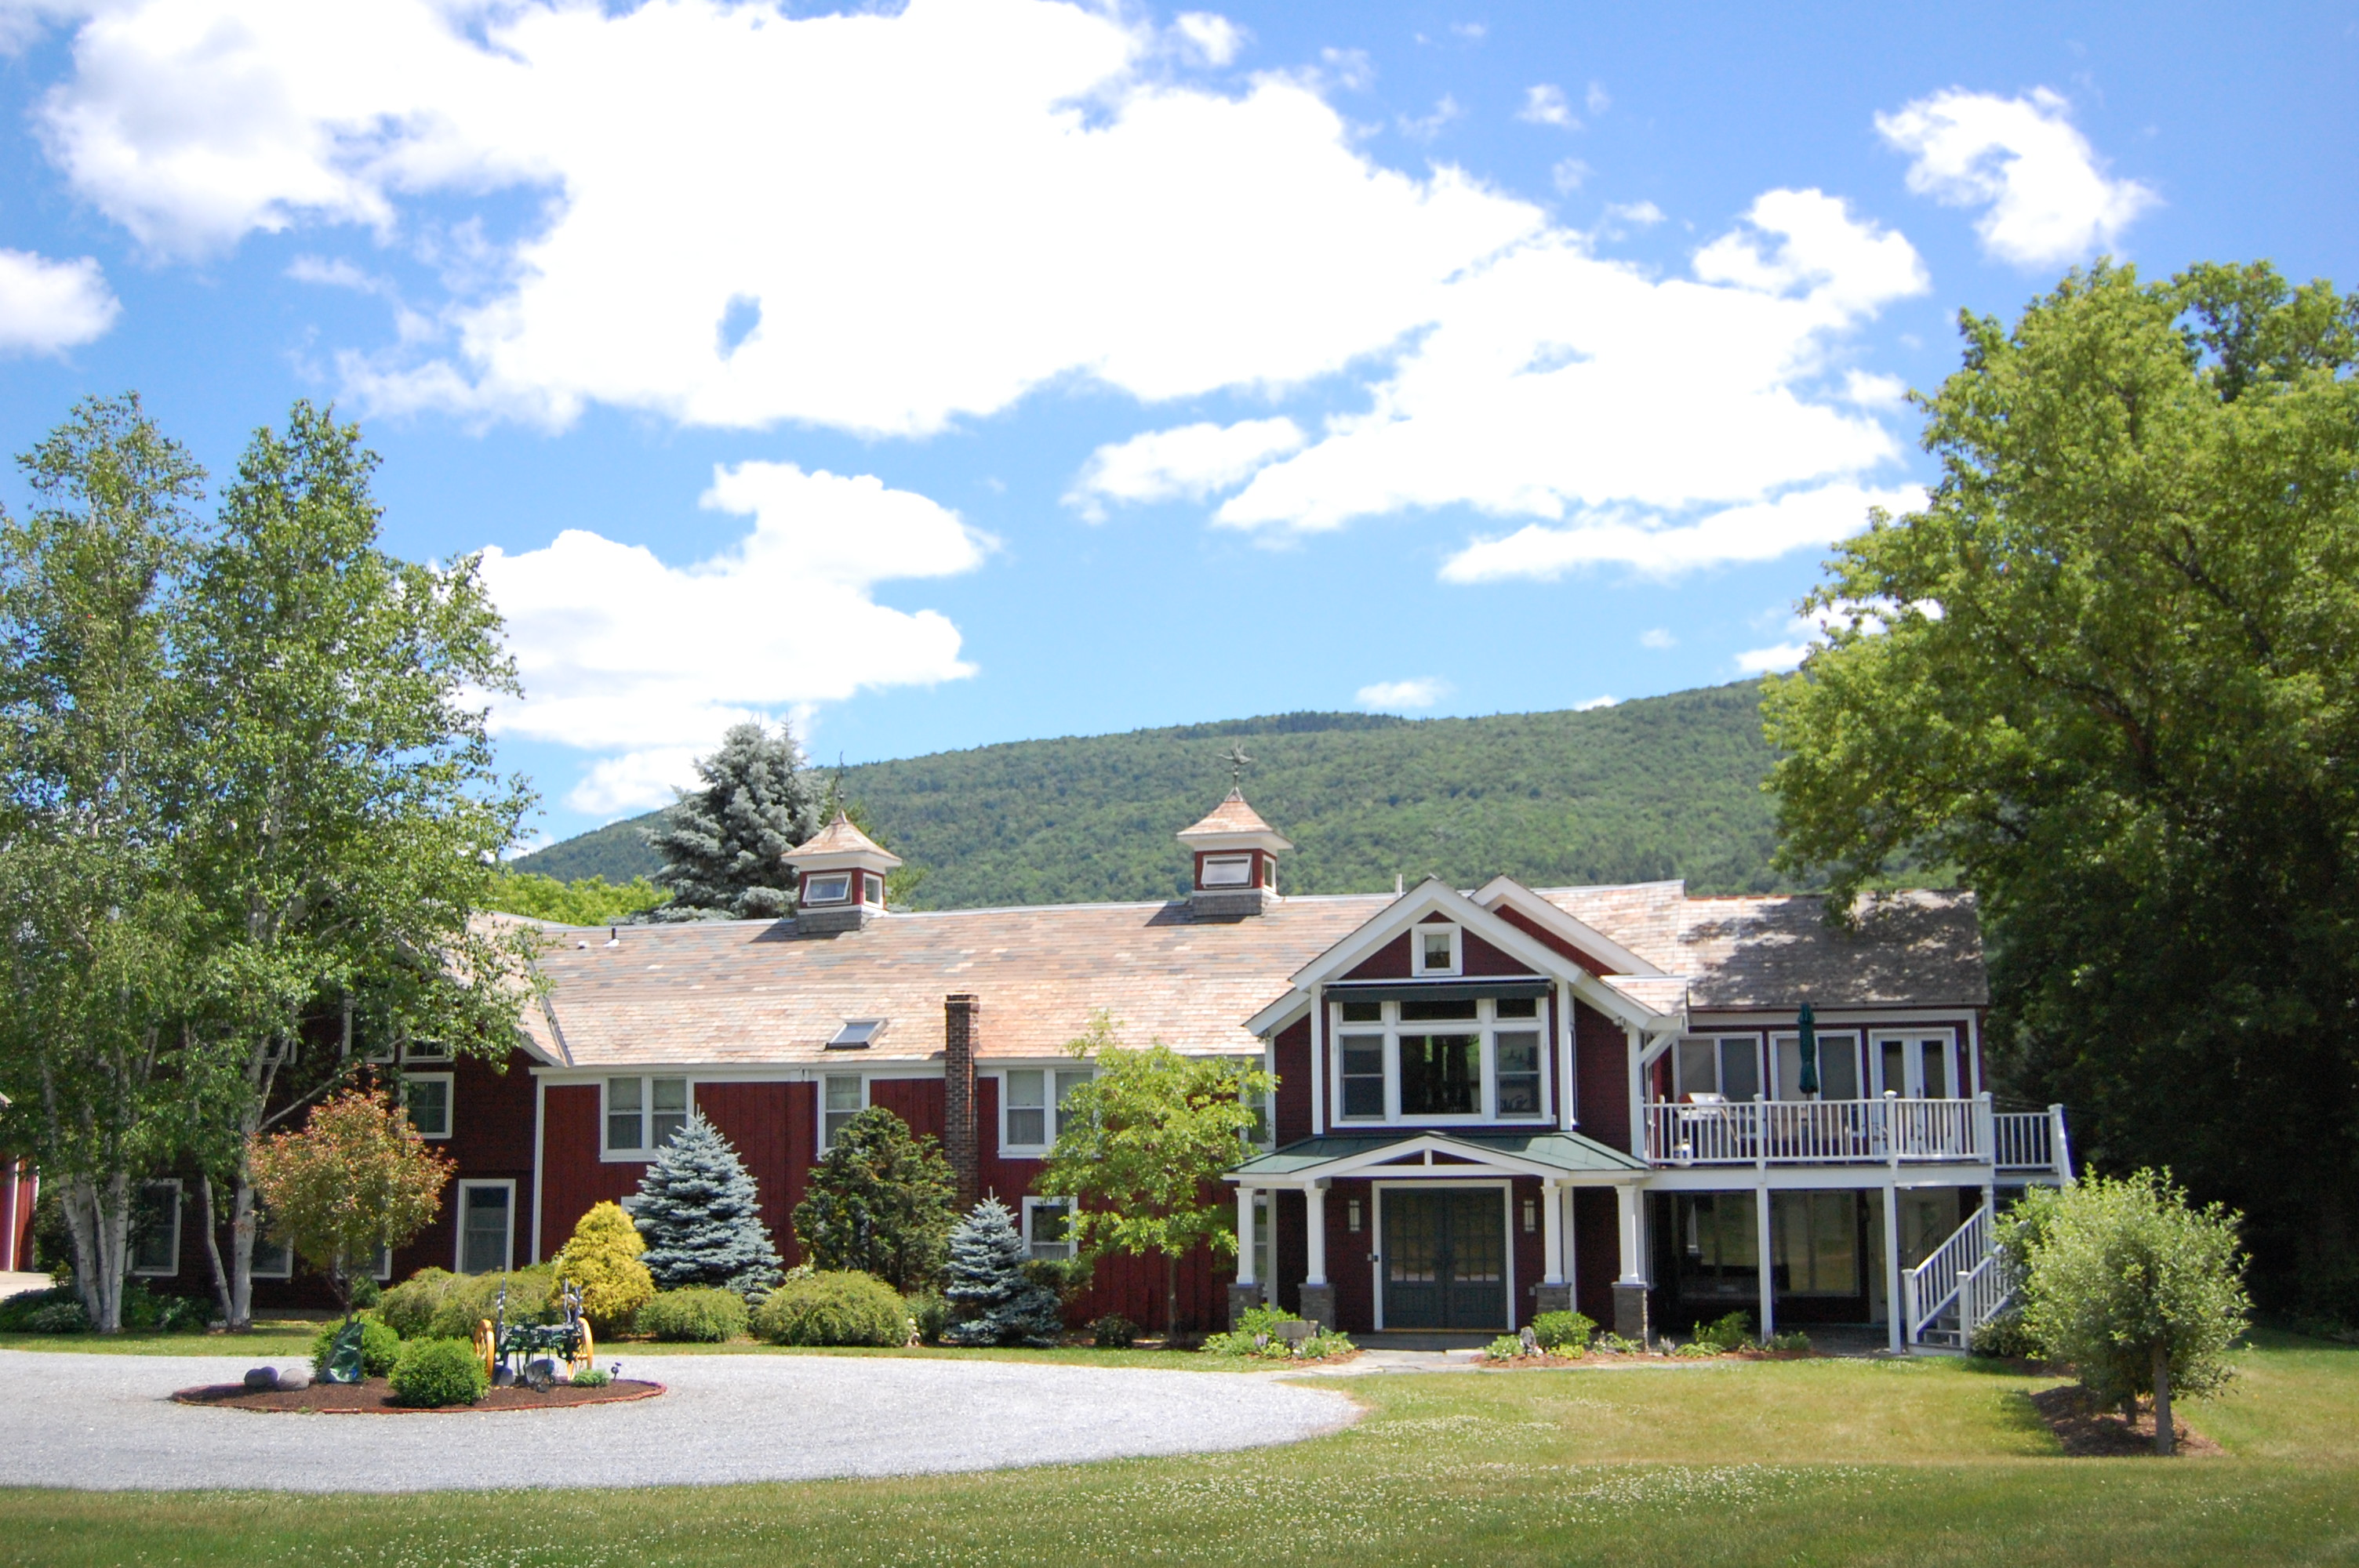 Single Family Home for Sale at Meticulously Renovated Post & Beam 7 Muddy Ln Manchester, Vermont, 05255 United States